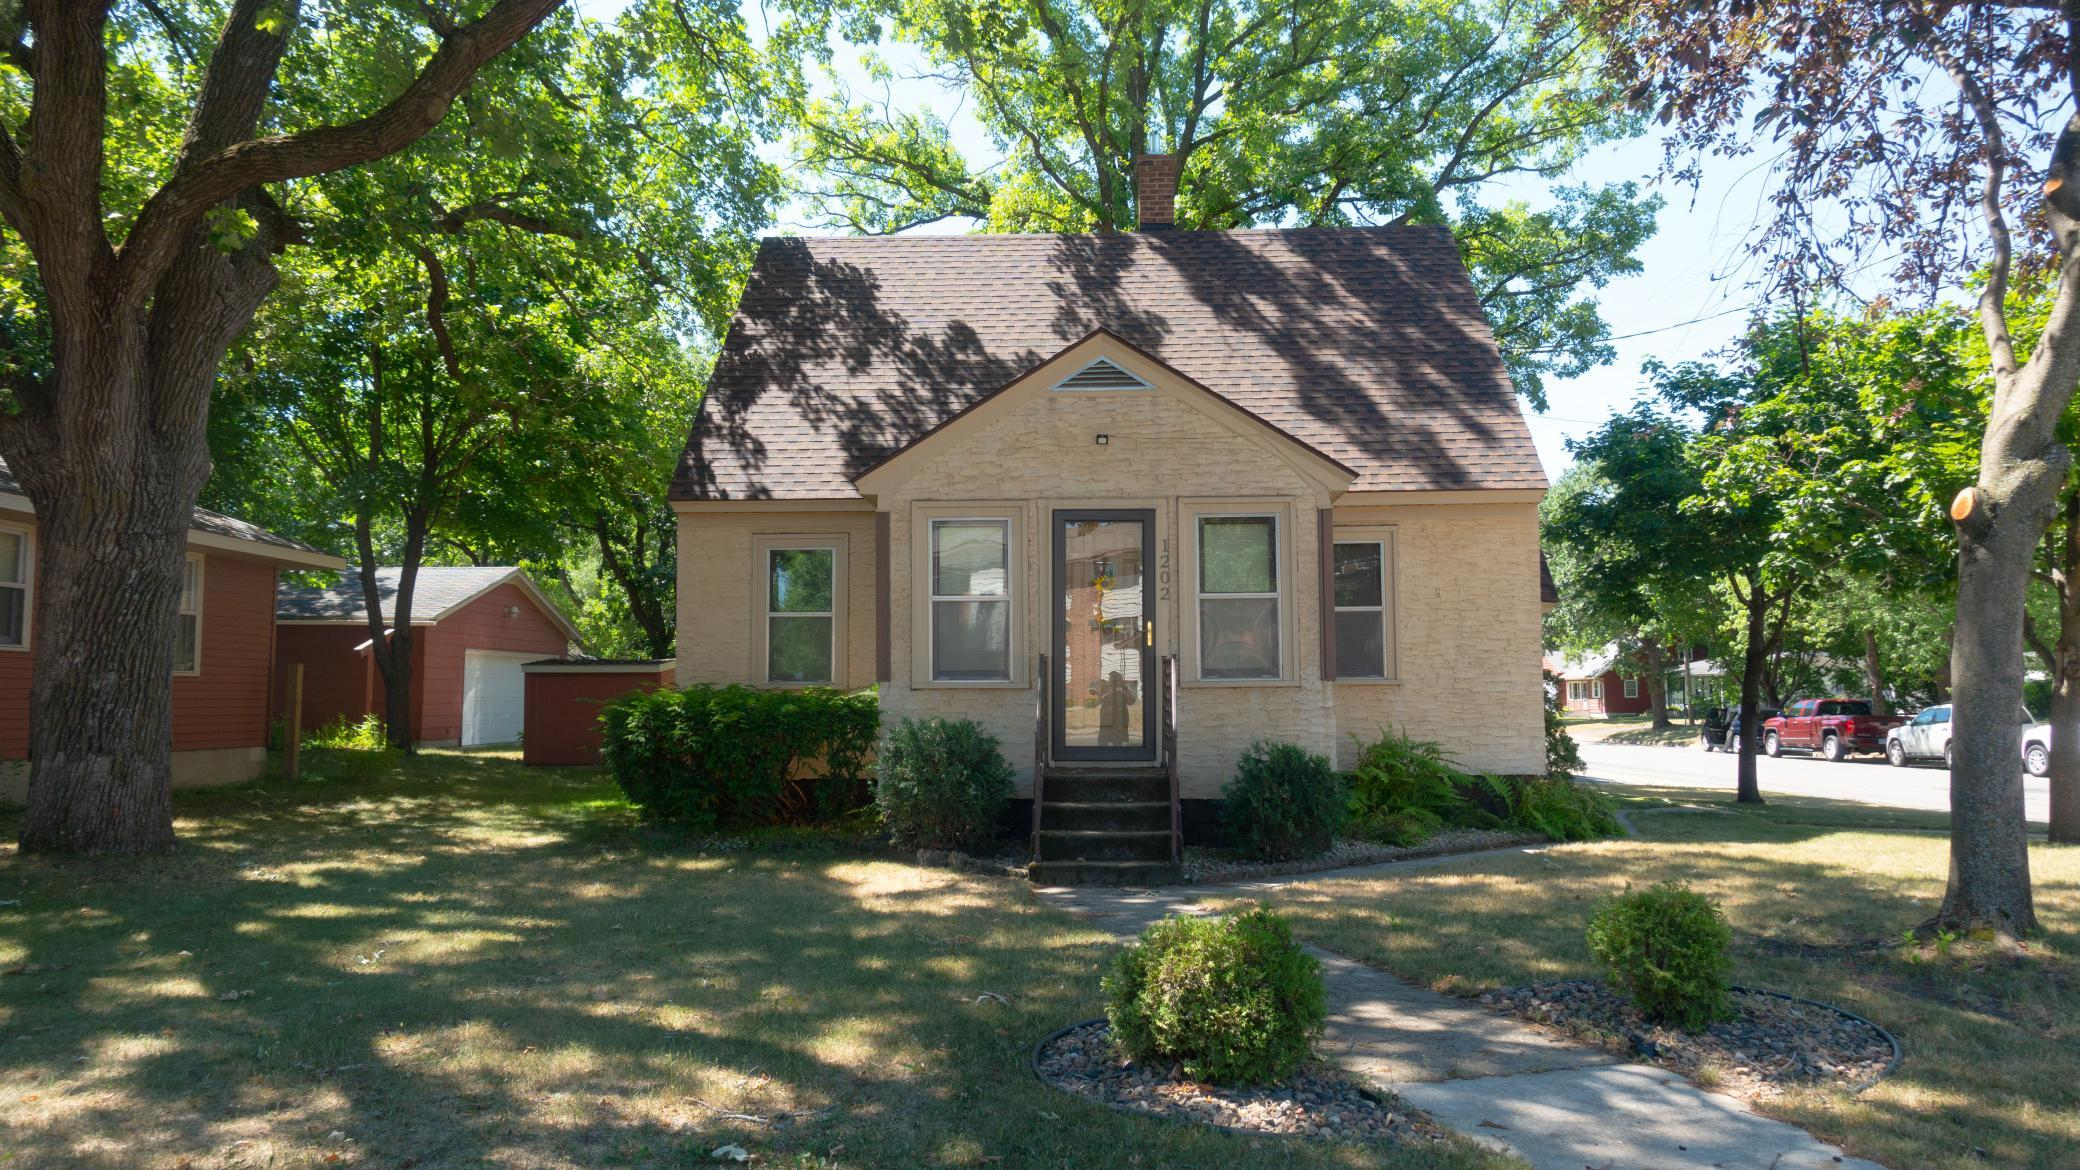 This Home is a must see, it has 3 Bedrooms, 2 Bathrooms, & a 2 Stall Garage! New Roof, was done in 2017! The Garage is Heated, Insulated, has a Garage Door Opener, Cabinets for storage, & has a 40 amp Circuit Breaker Box. Main Floor Master Bedroom has its own attached Bathroom! Beautiful yard with impressive oak trees and rock beds. This home is listed at $145,000!